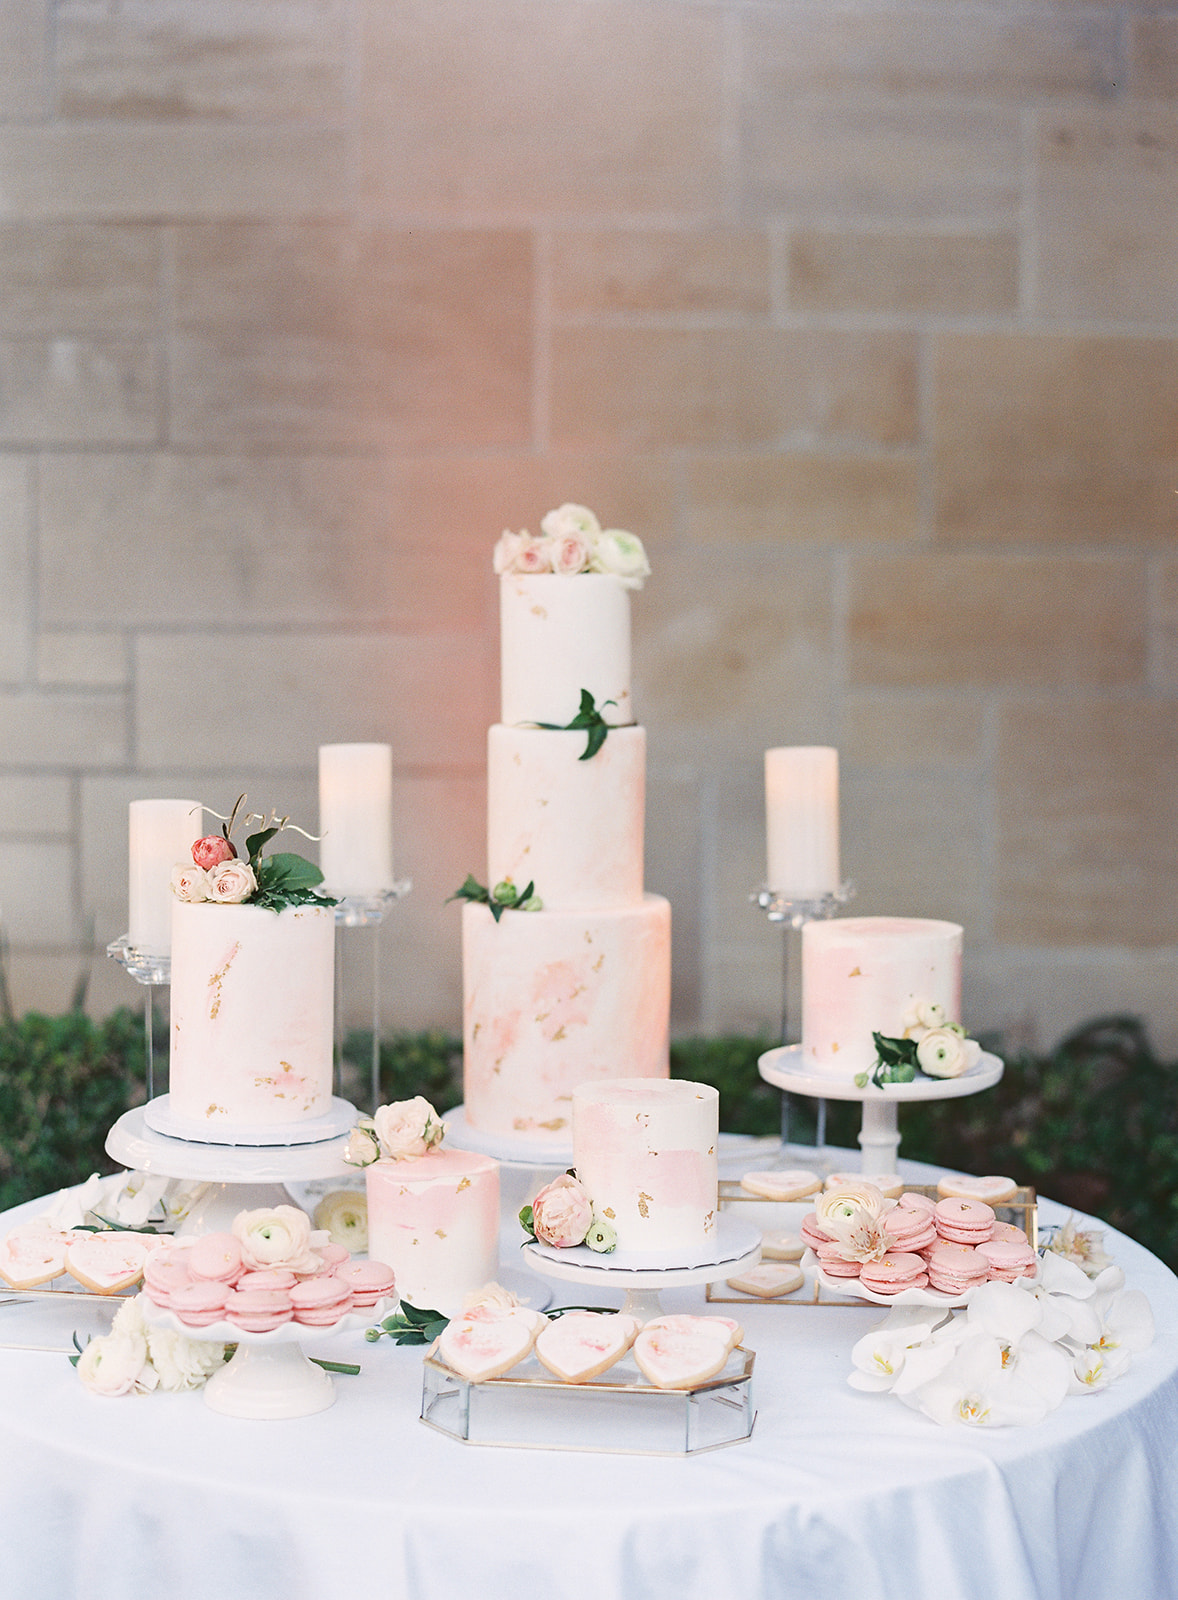 Marbled pink and white wedding cakes in multiple sizes on a table